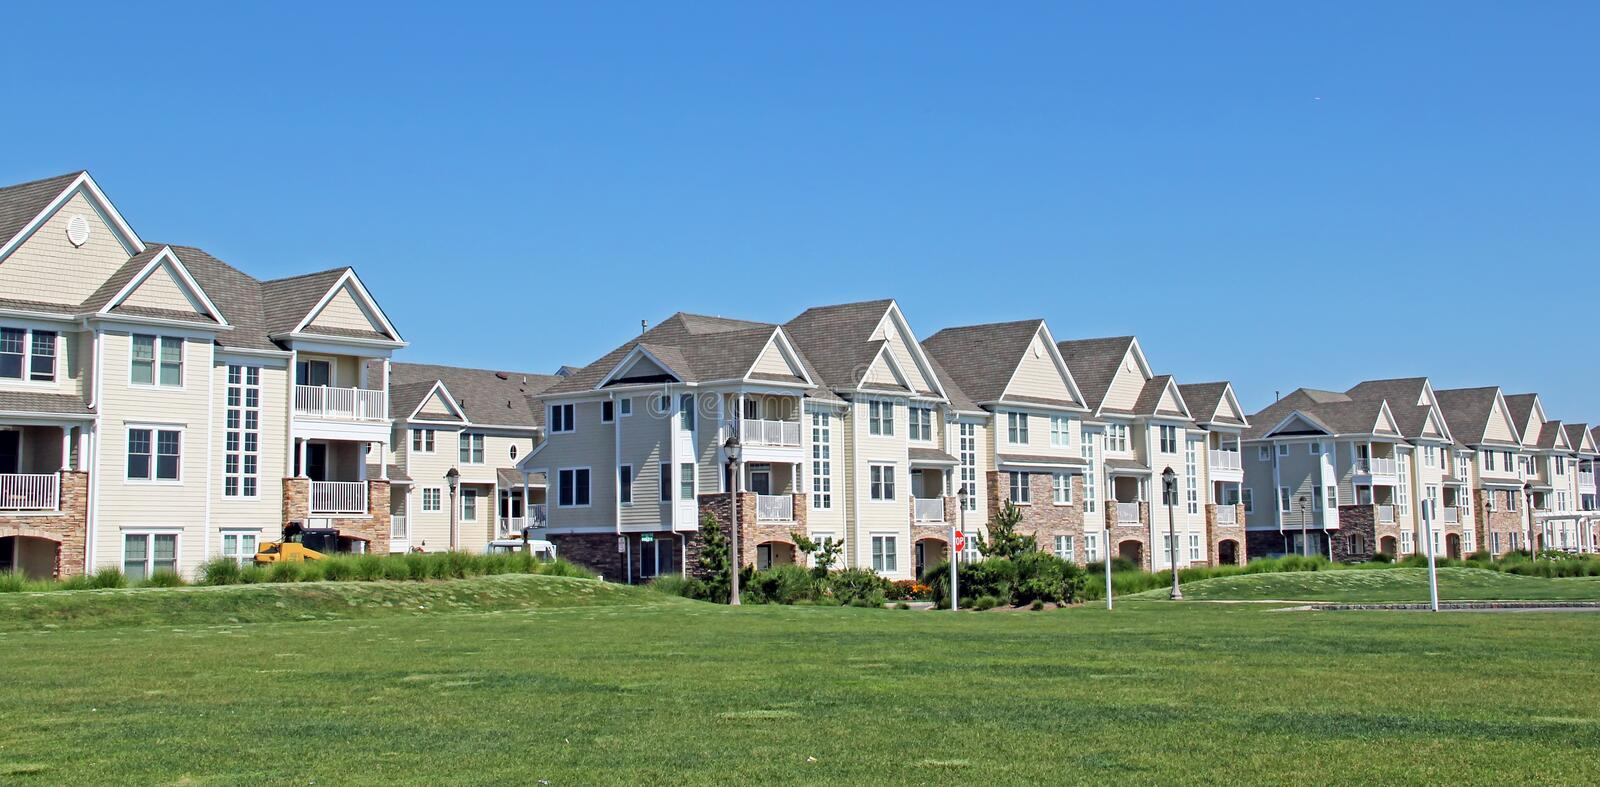 Modern Townhouses stock image